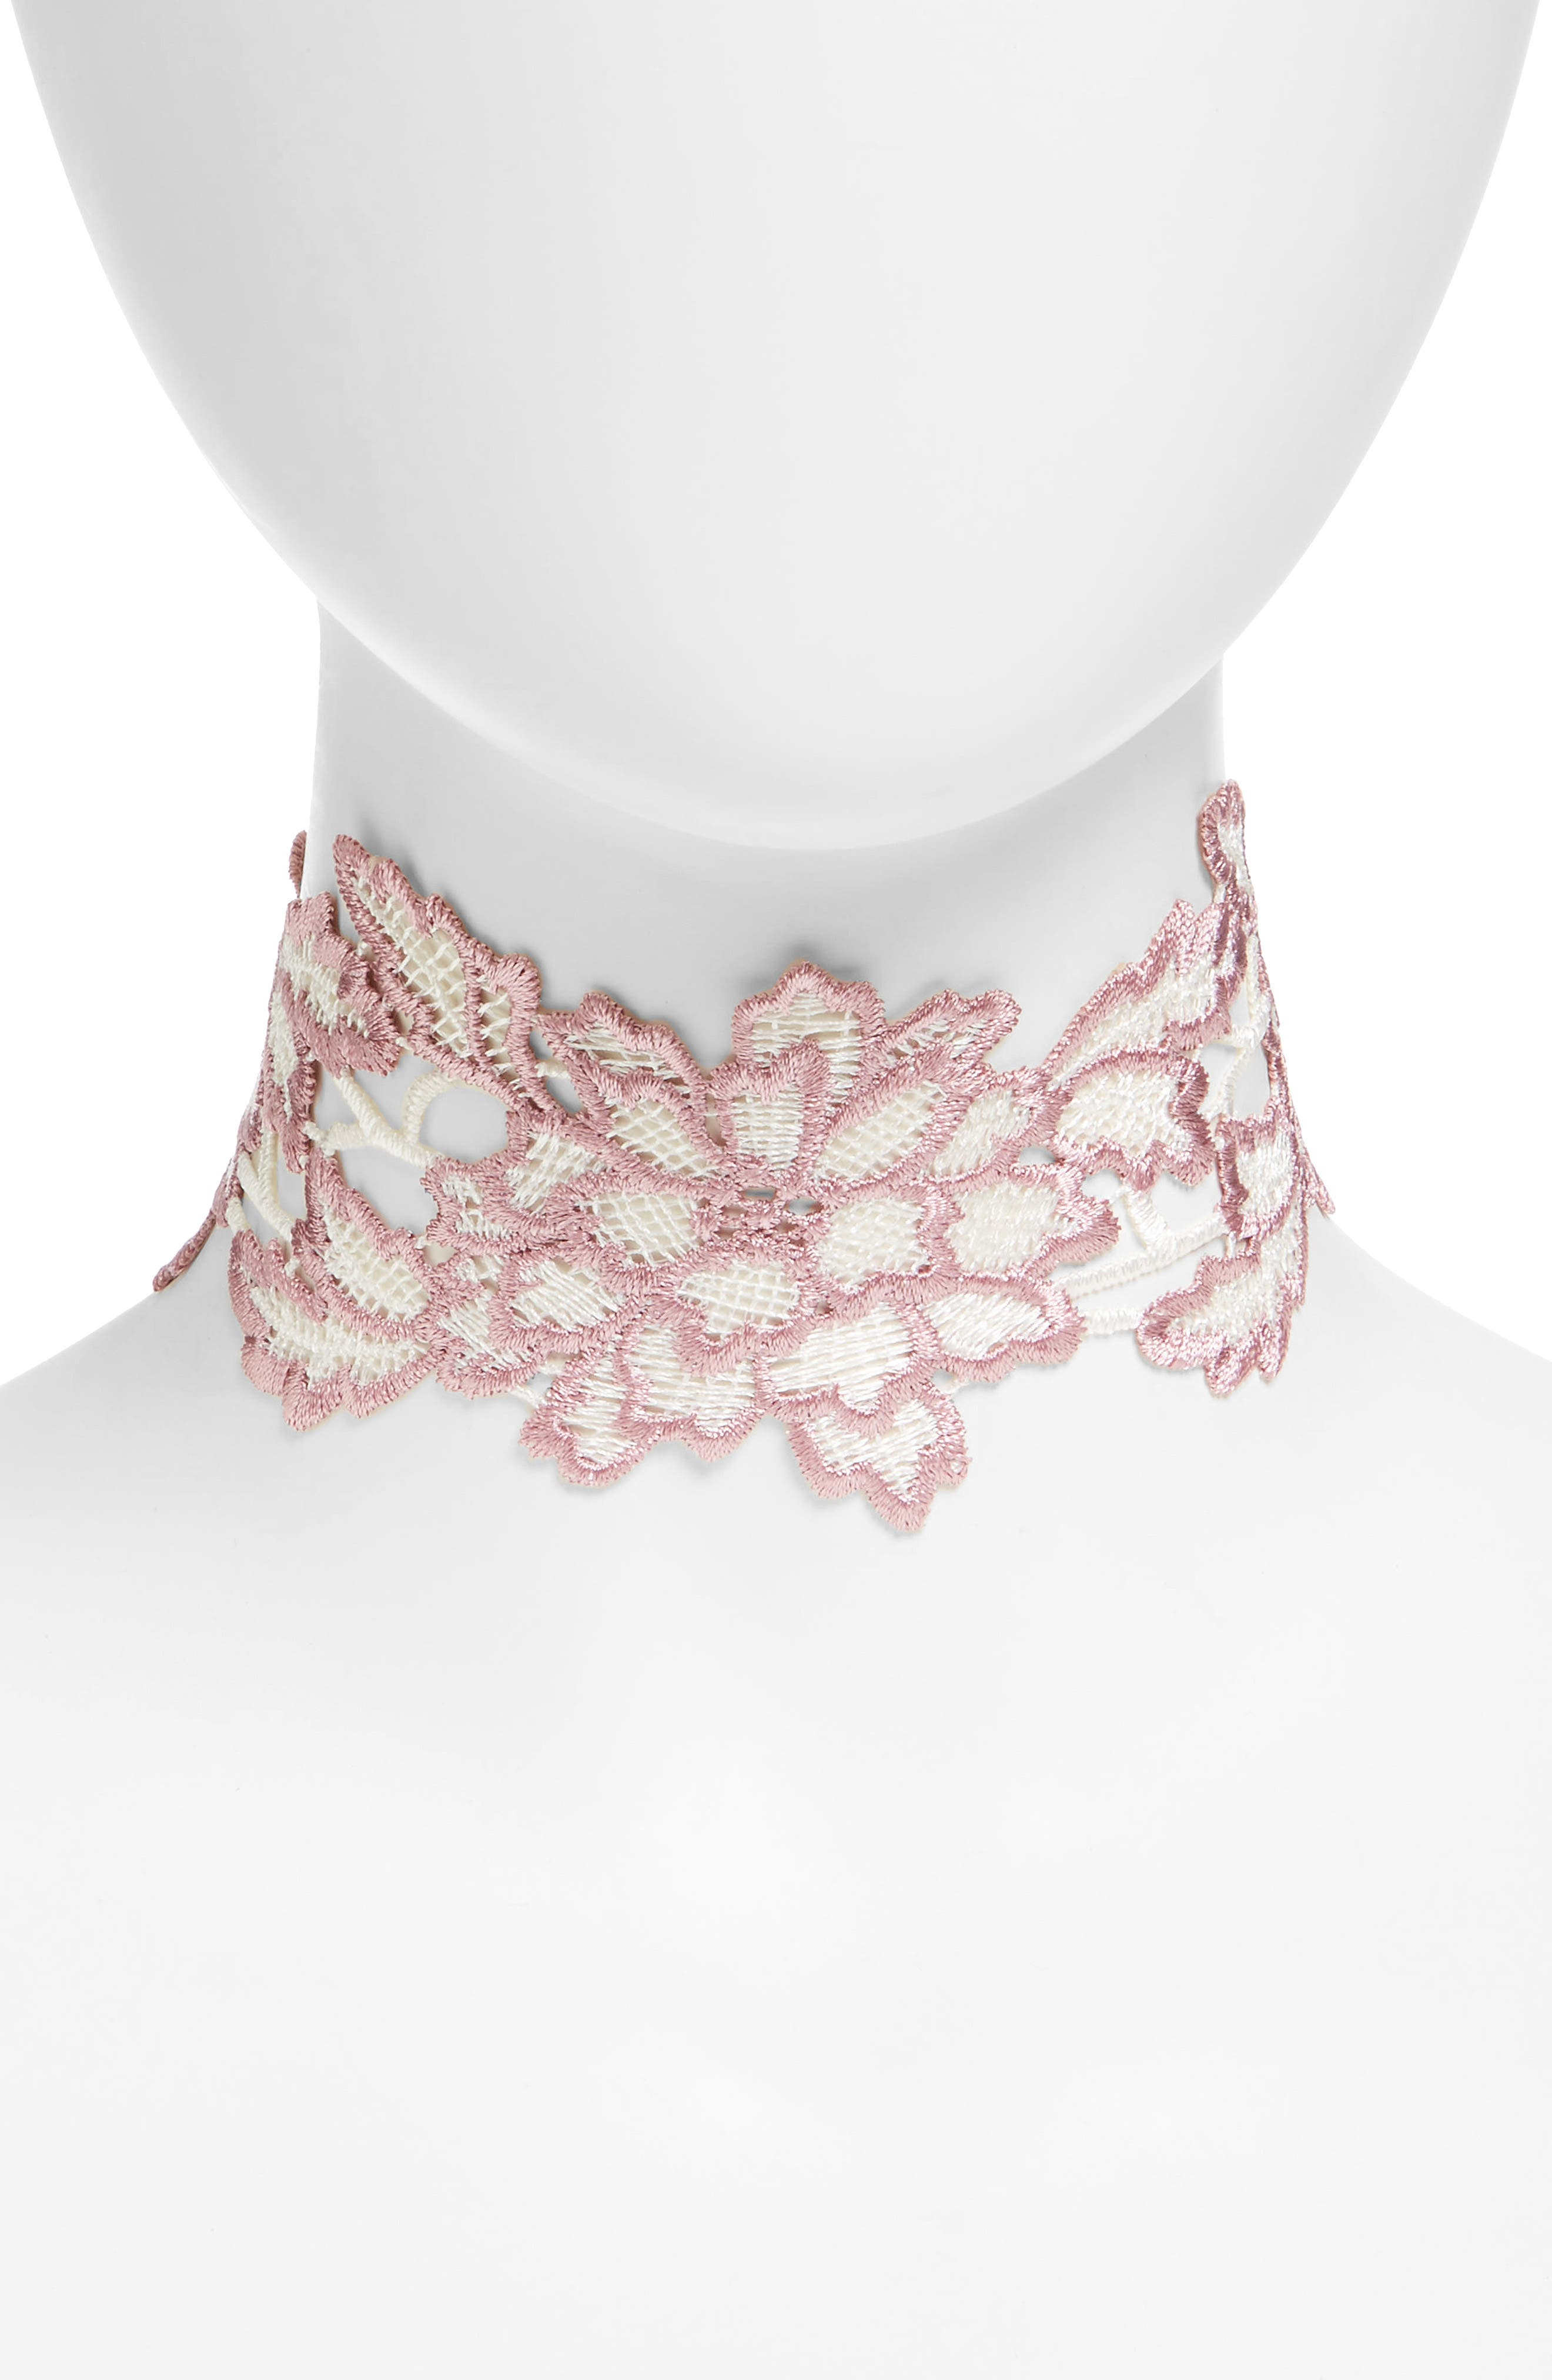 Topshop Embroidered Floral Lace Choker